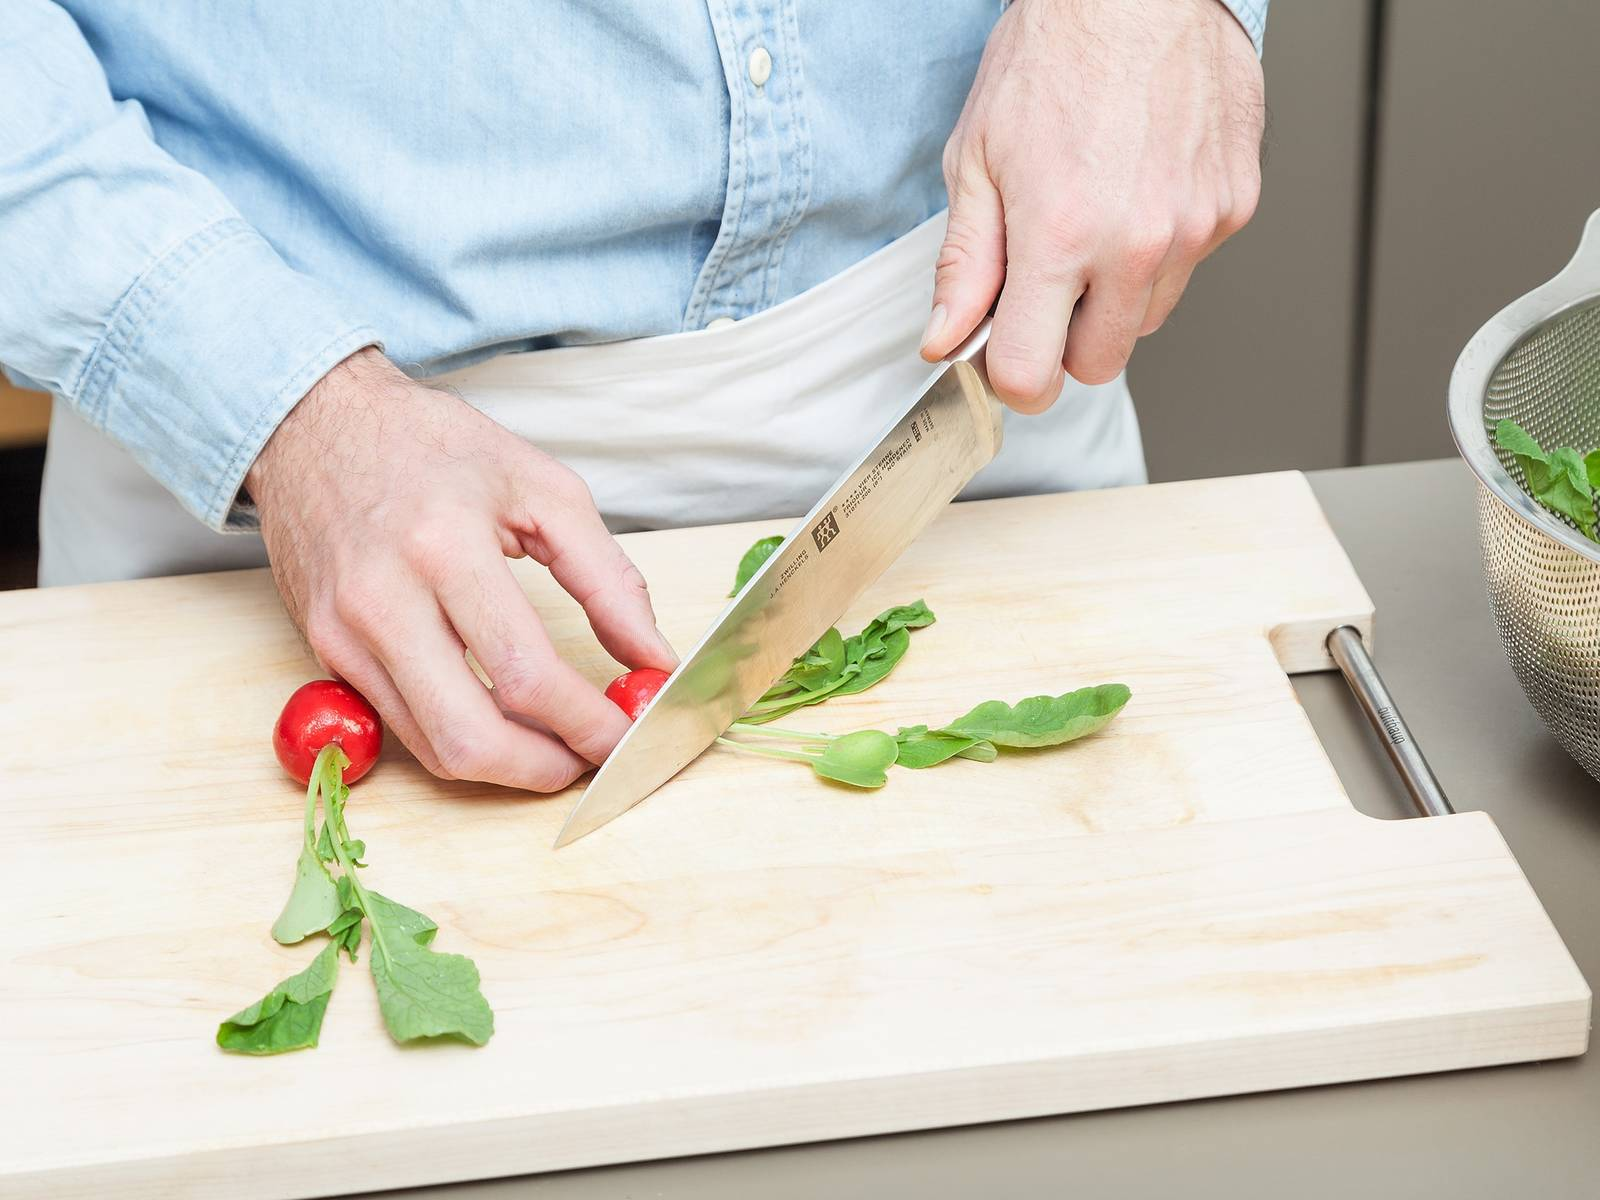 Wash the radishes and their greens and dry well. Cut the green leaves of the radishes, leaving some intact.